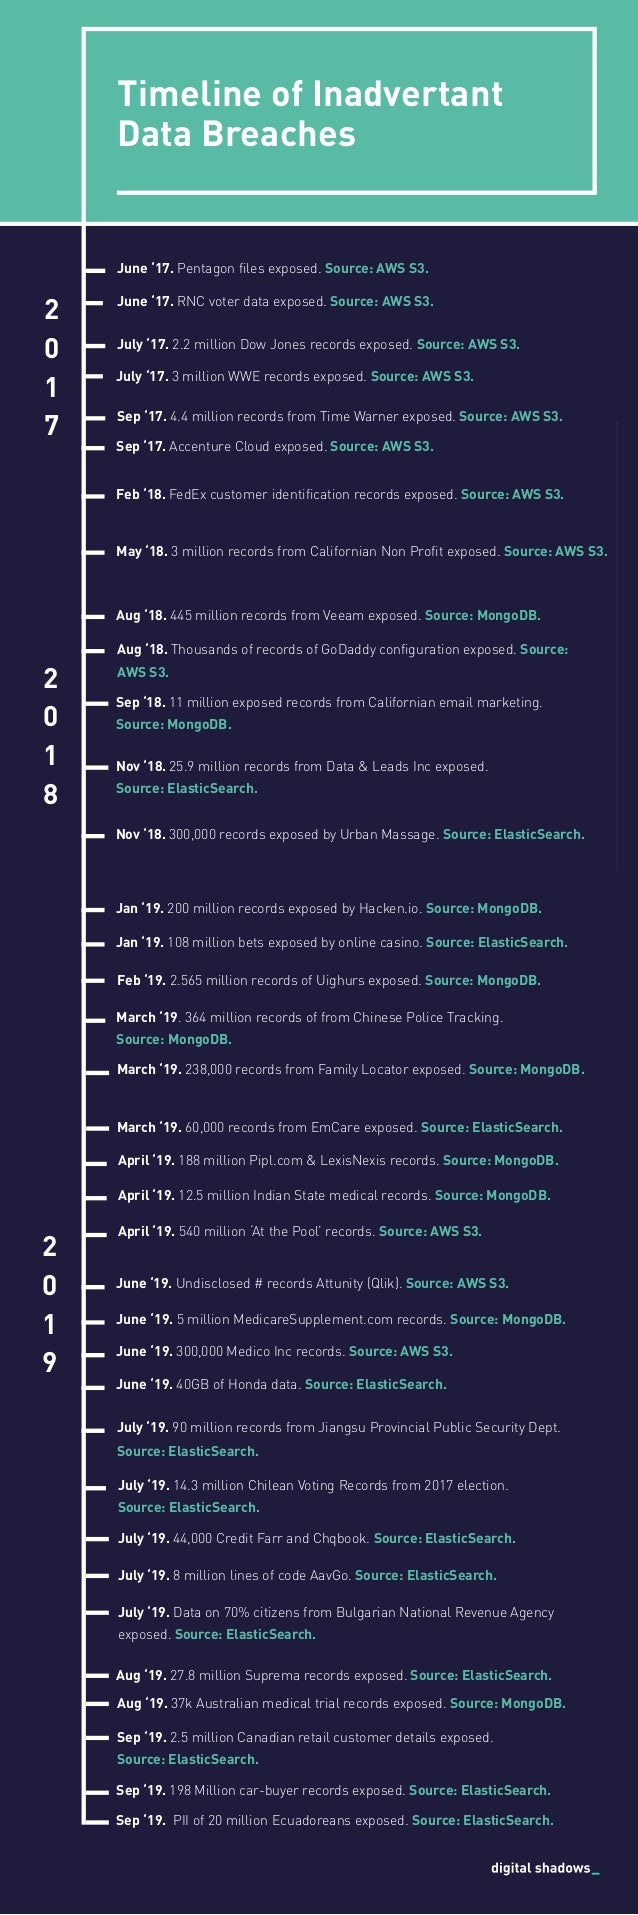 Timeline of Inadvertant Data Breaches 2 0 1 7 June '17. Pentagon files exposed. Source: AWS S3. July '17. 2.2 million Dow ...